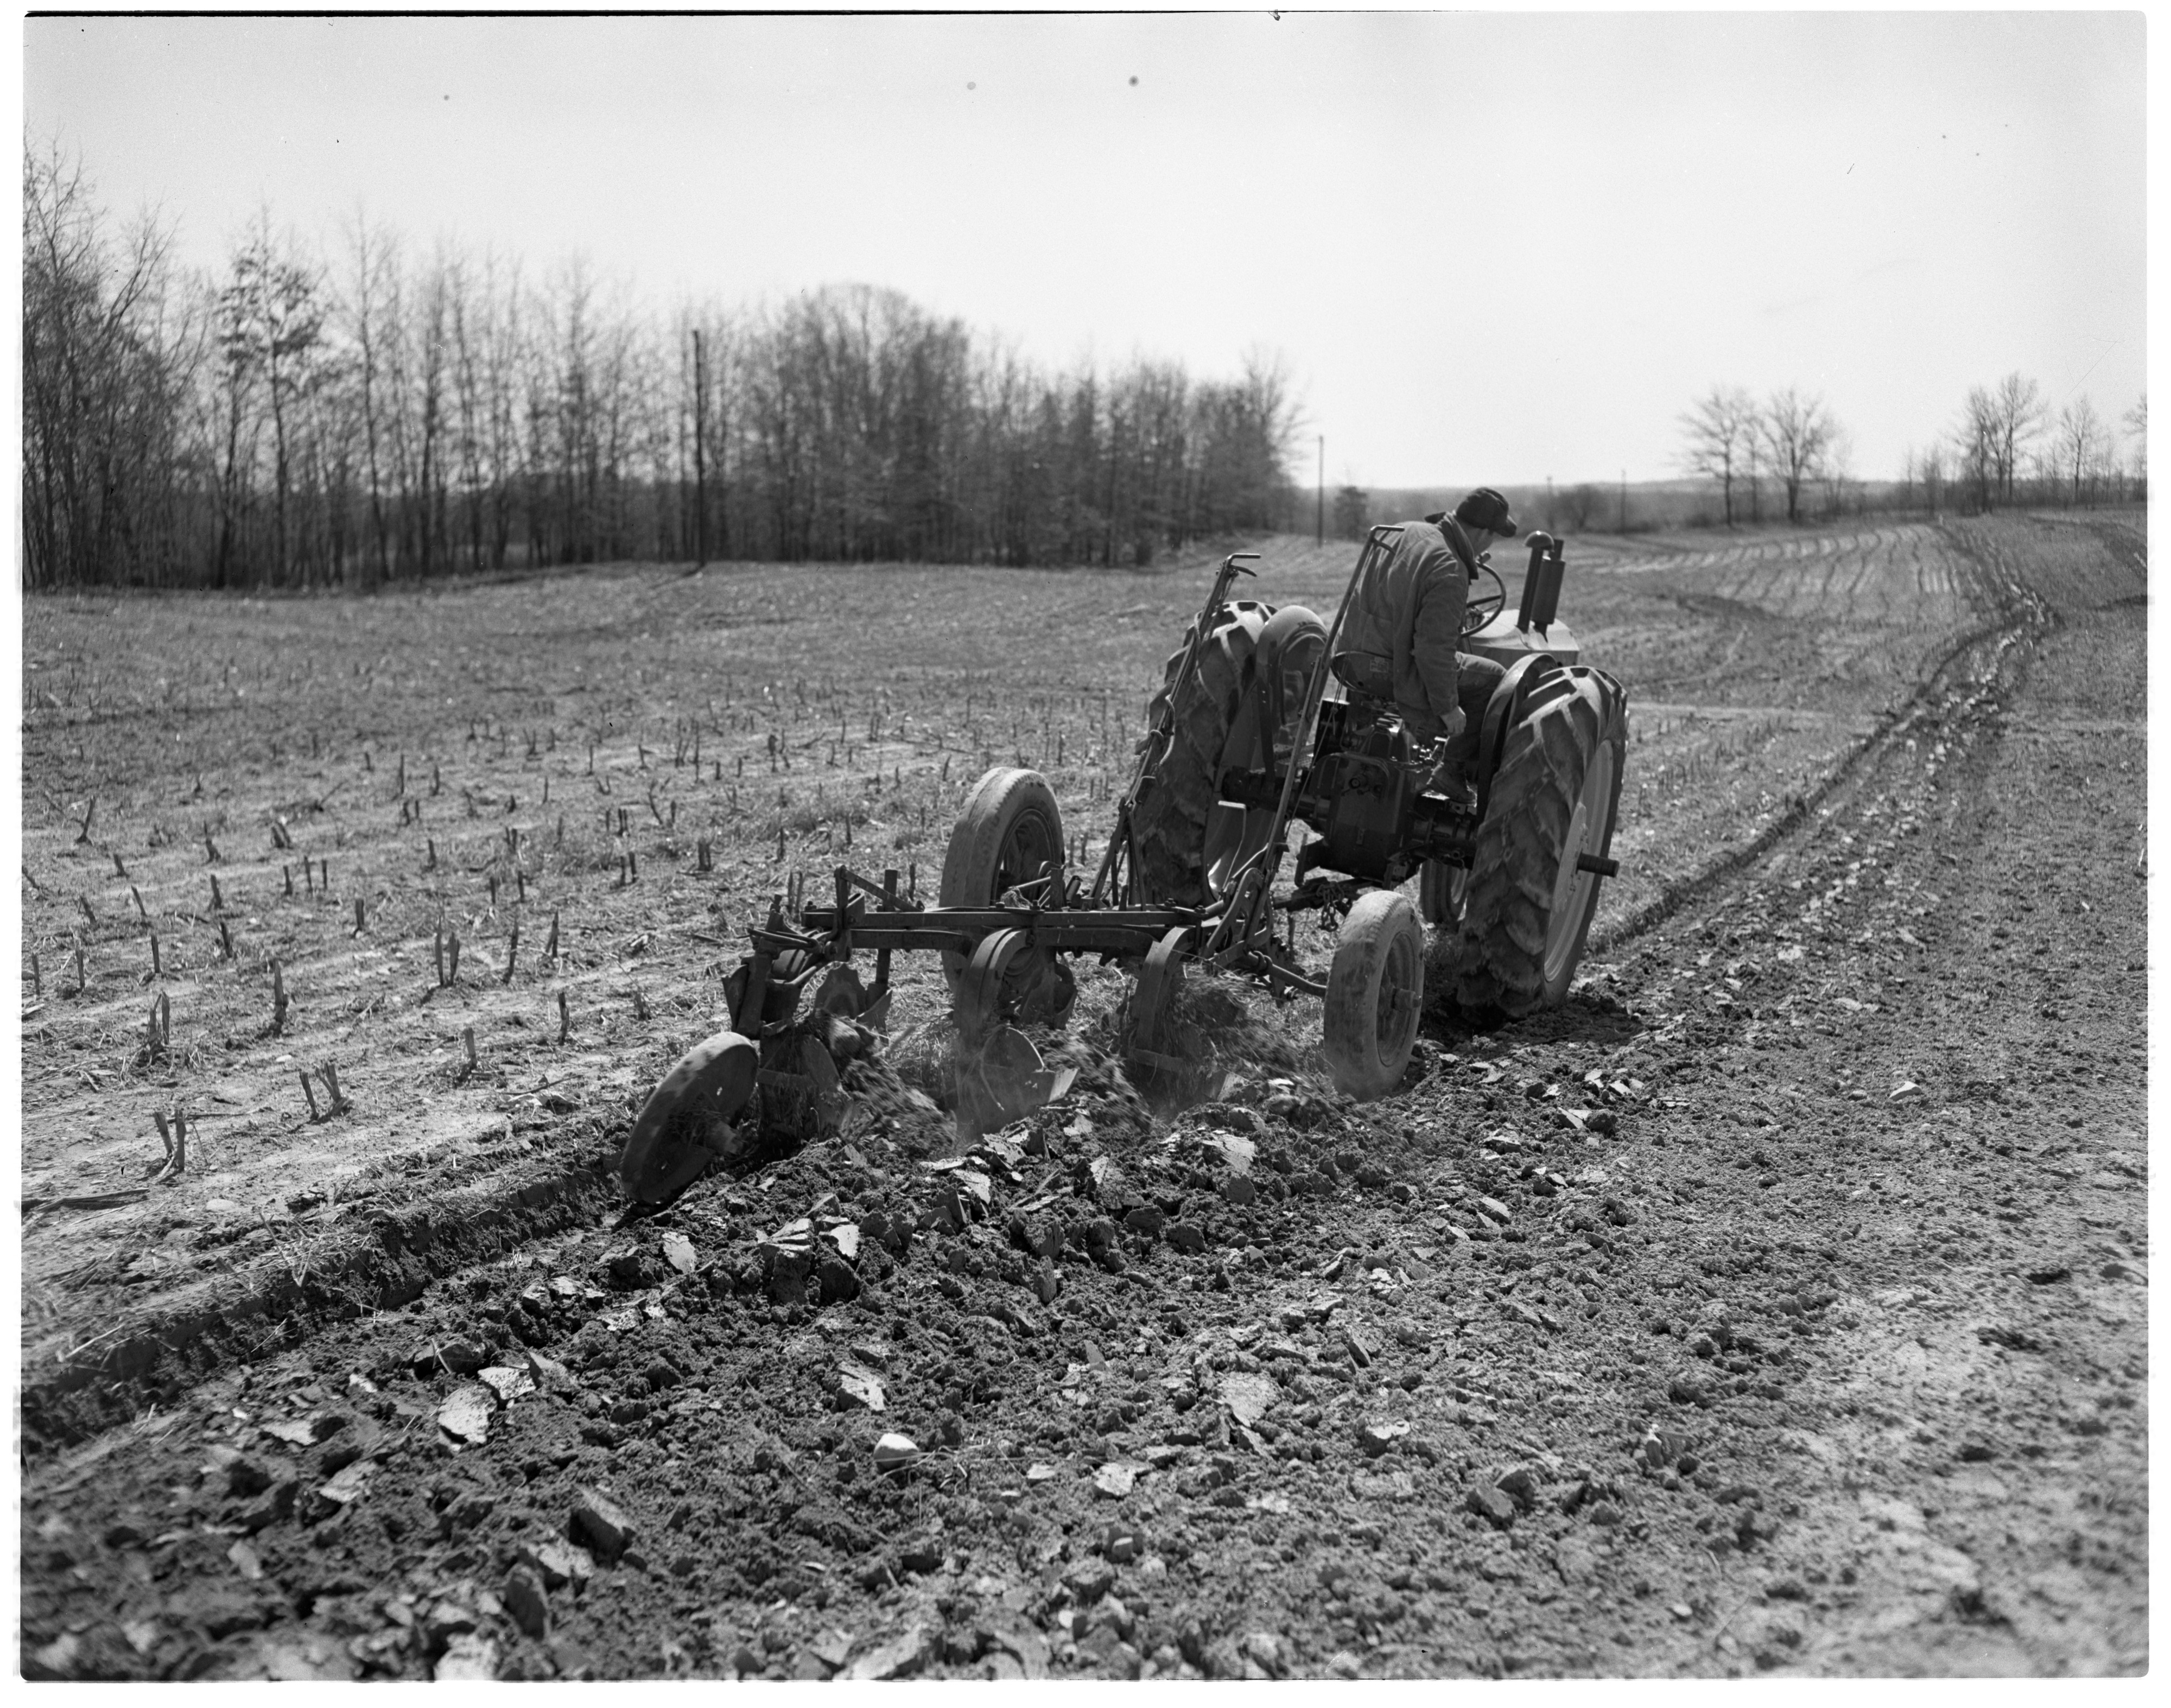 Massey-Harris Tractor Pulls Three-Plow Unit on Warren Murdoch Farm, April 1949 image